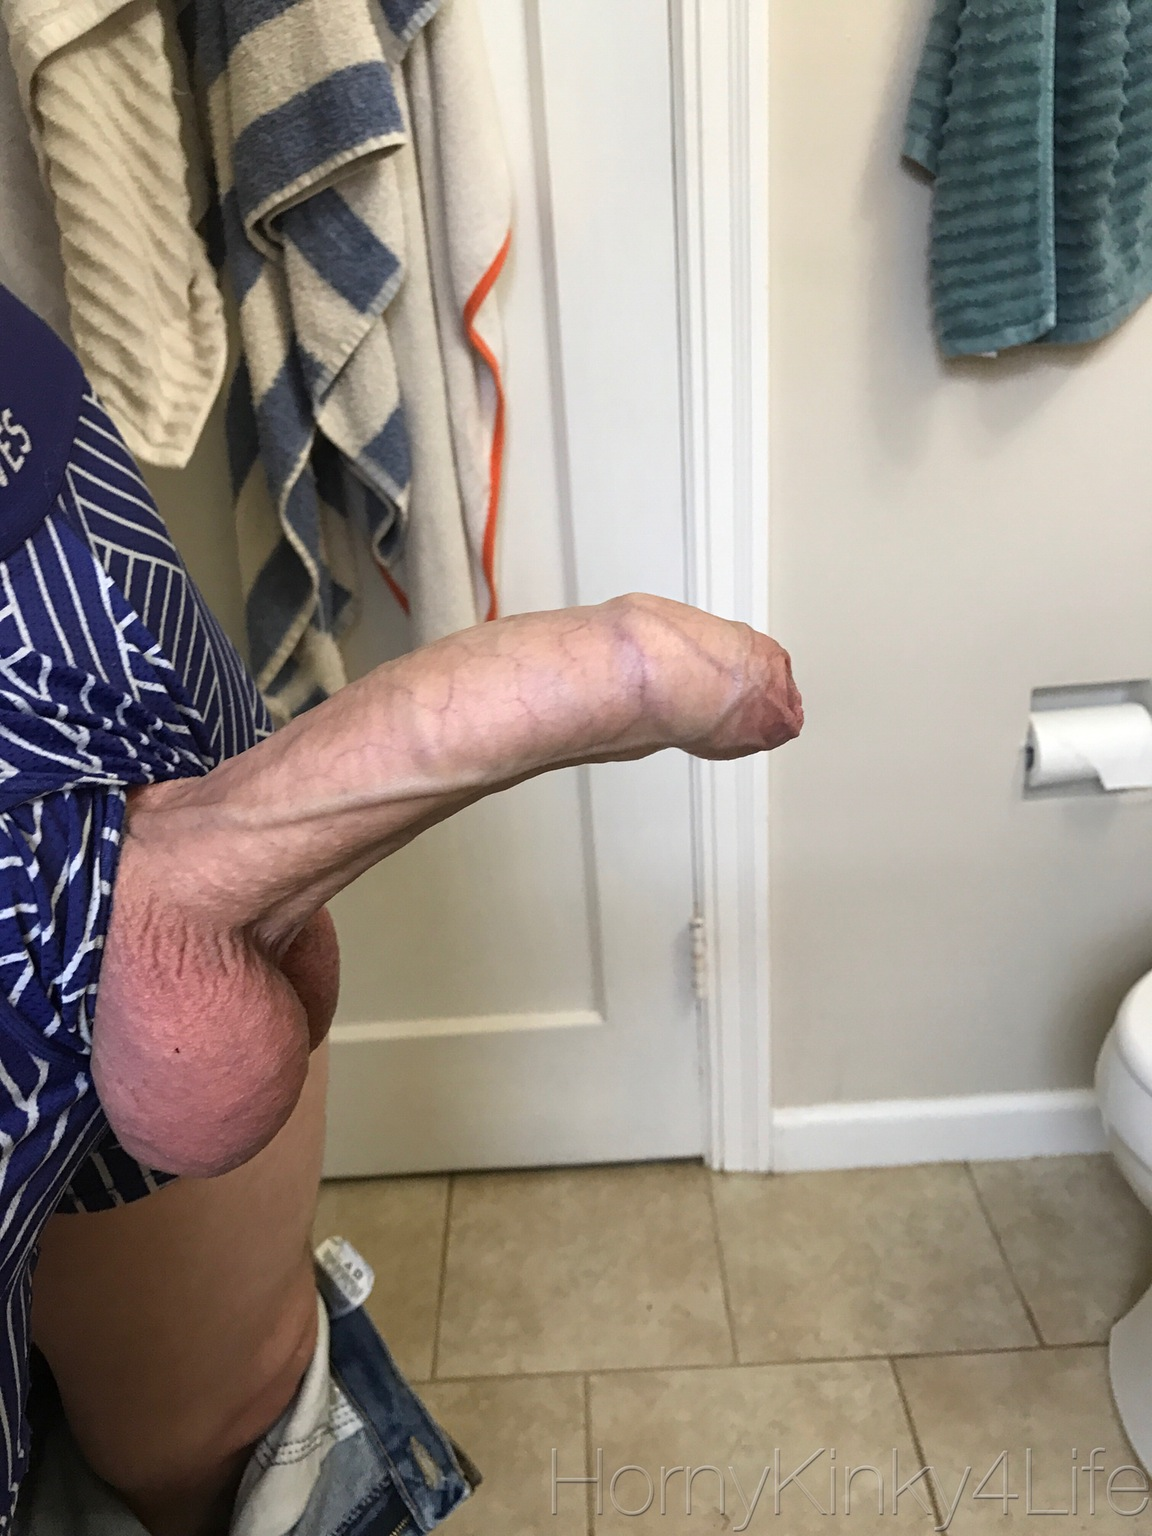 Cock with hard on pants